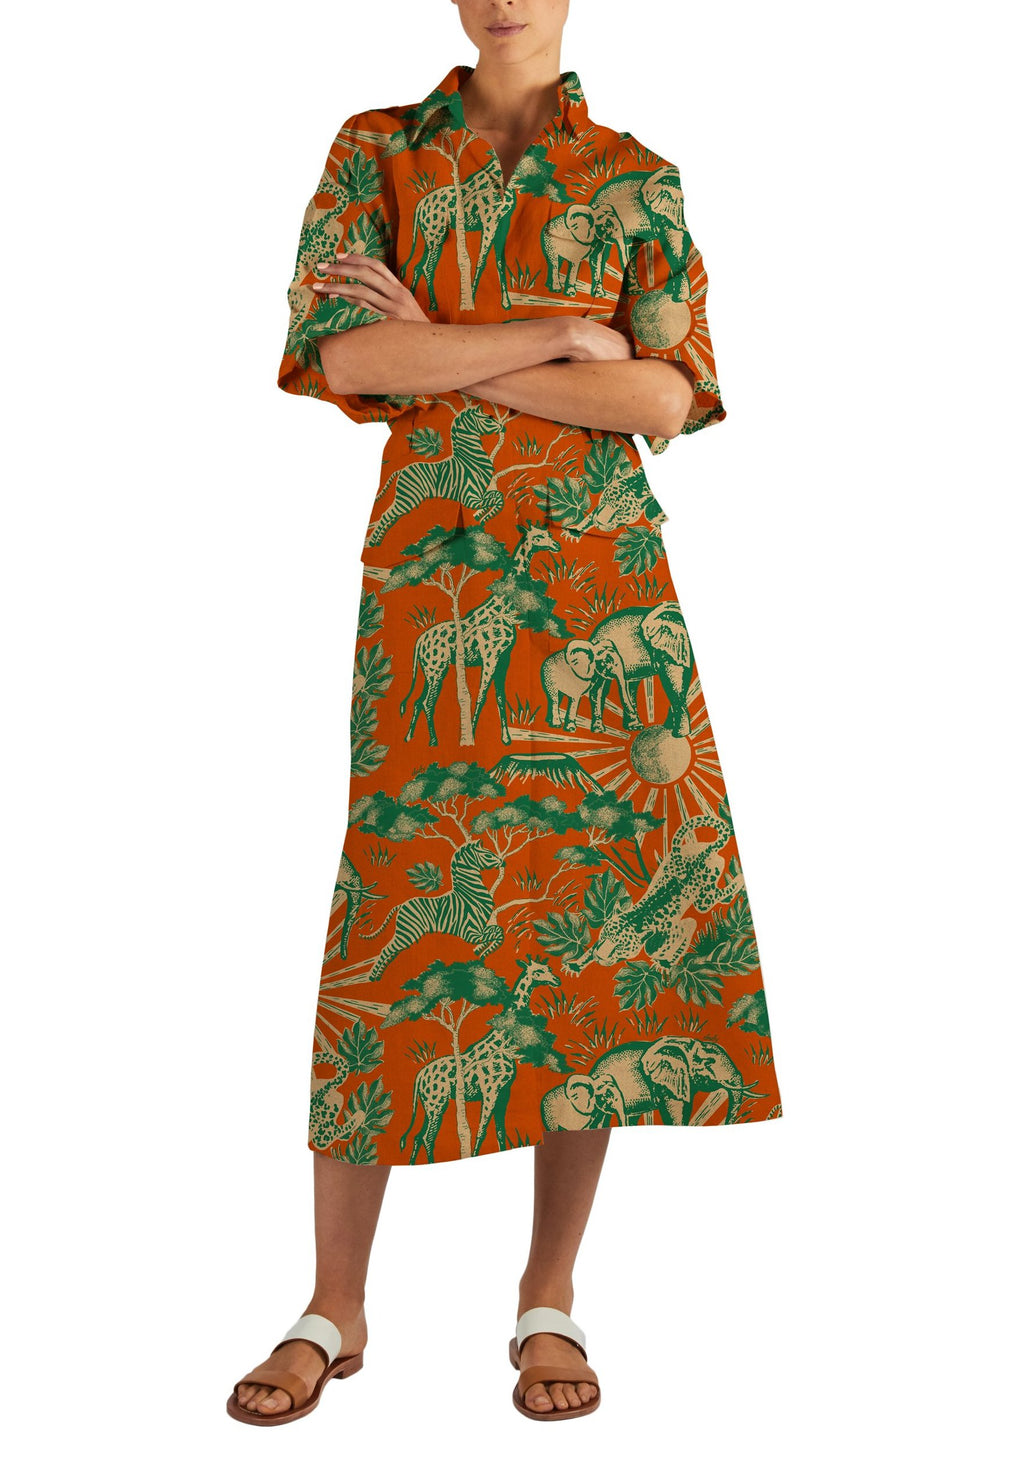 Jiraffe Safari Dress